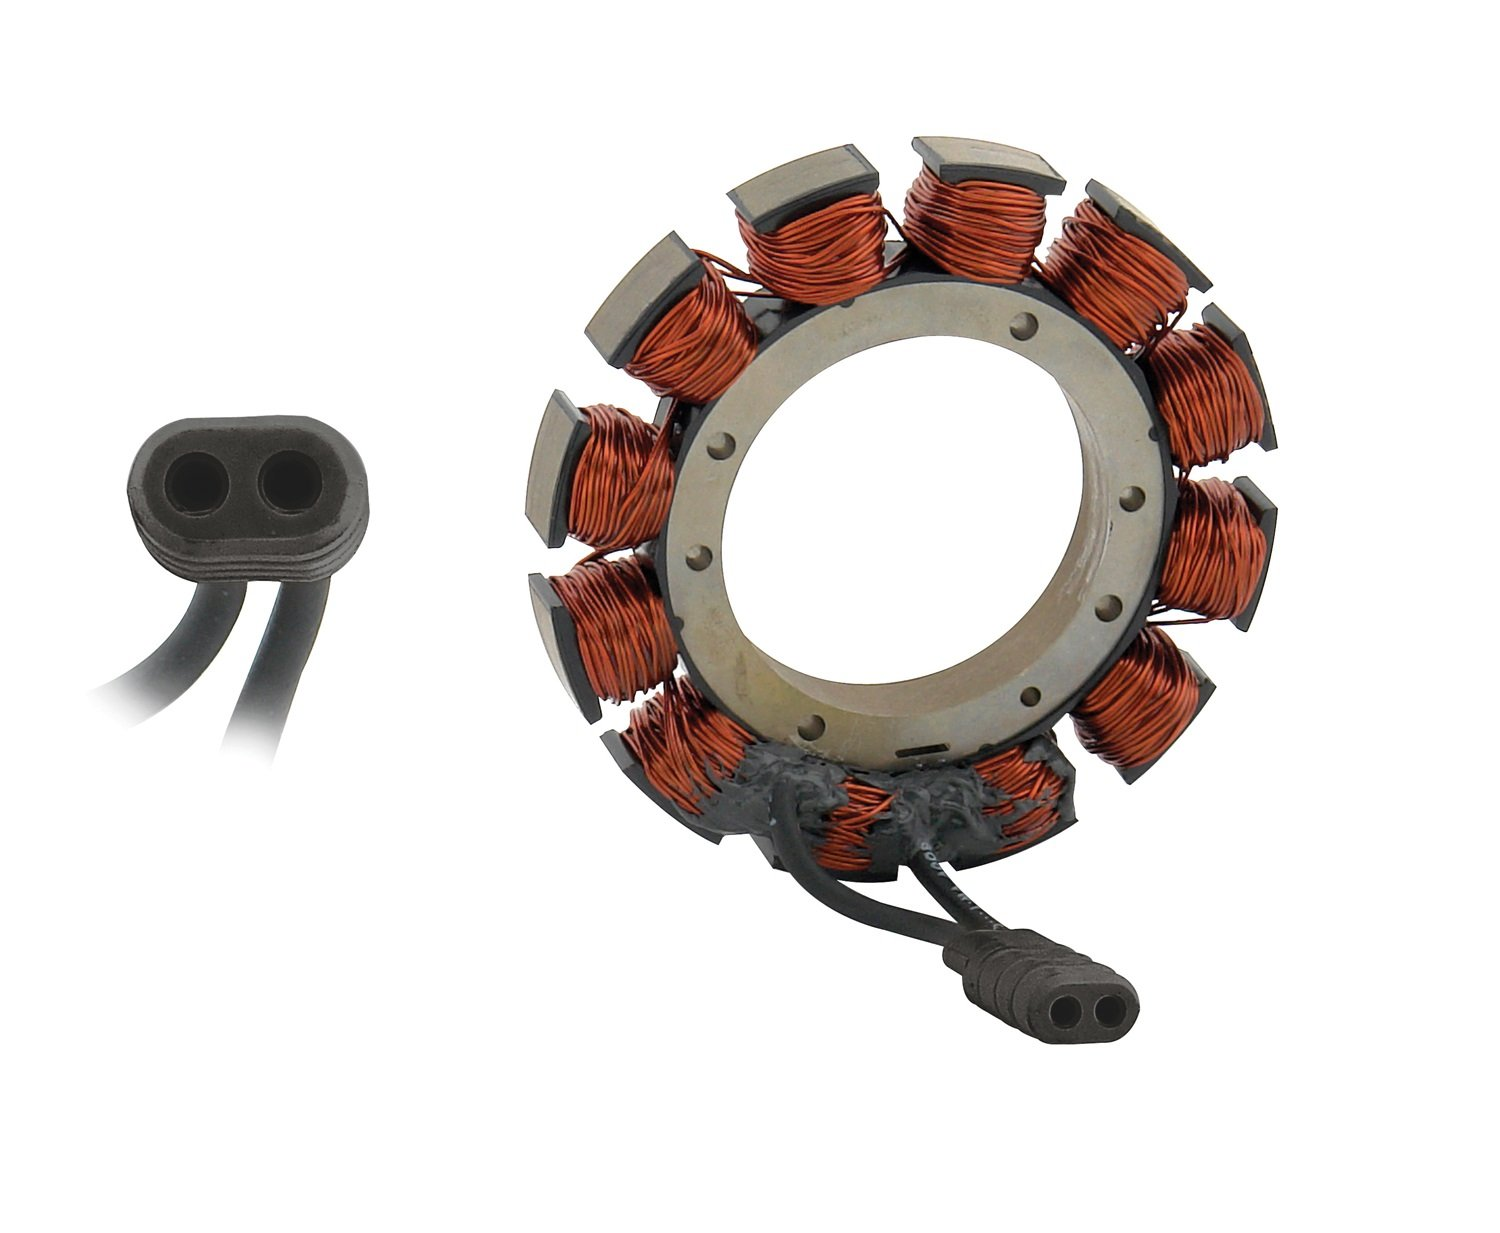 ACCEL ACC 152107 Unmolded Lectric Stator